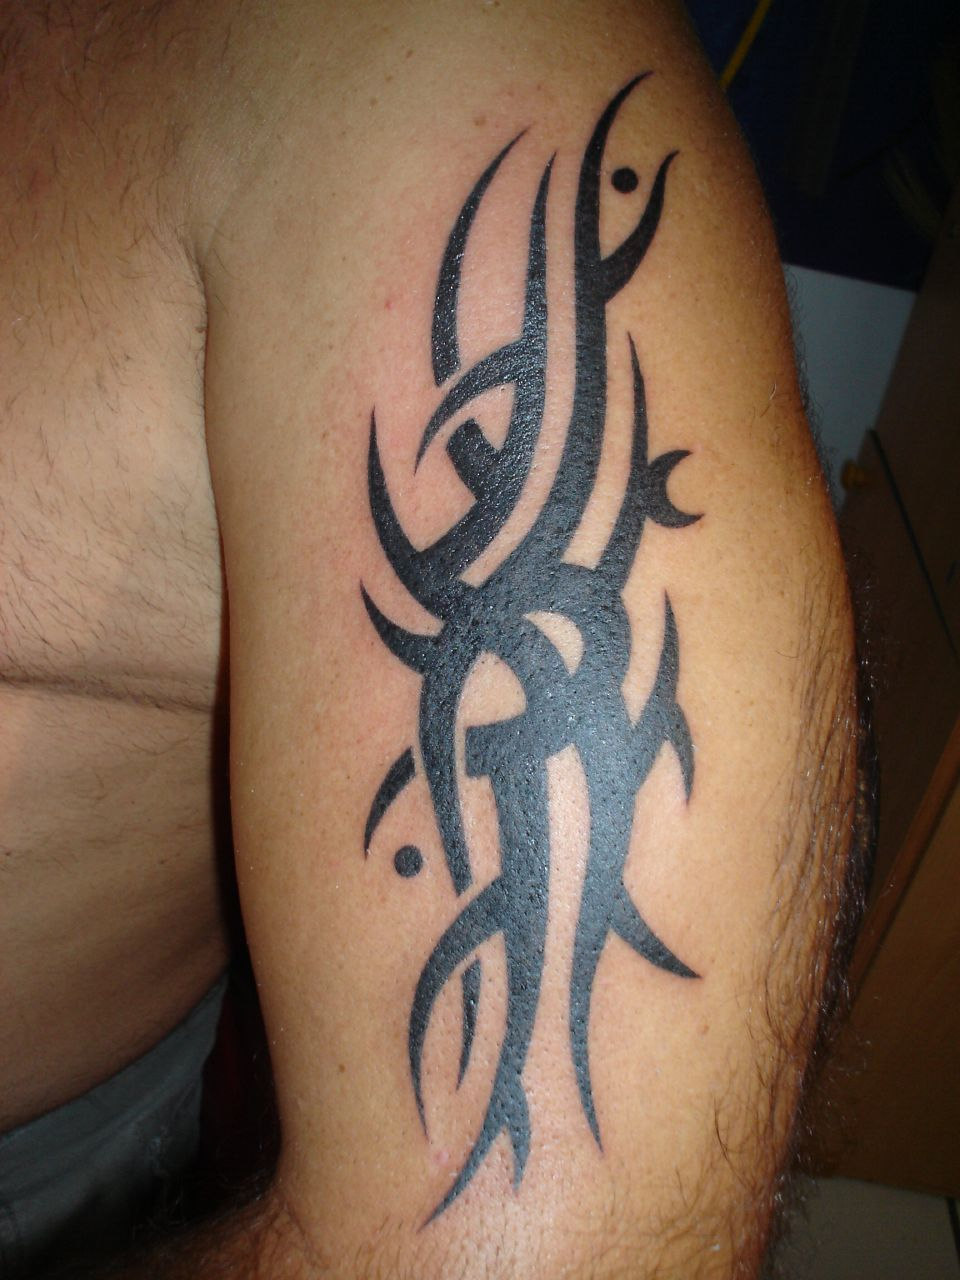 Tribal Tattoo For Arm: Greatest Tattoos Designs: Tribal Arm Tattoo Designs For Men